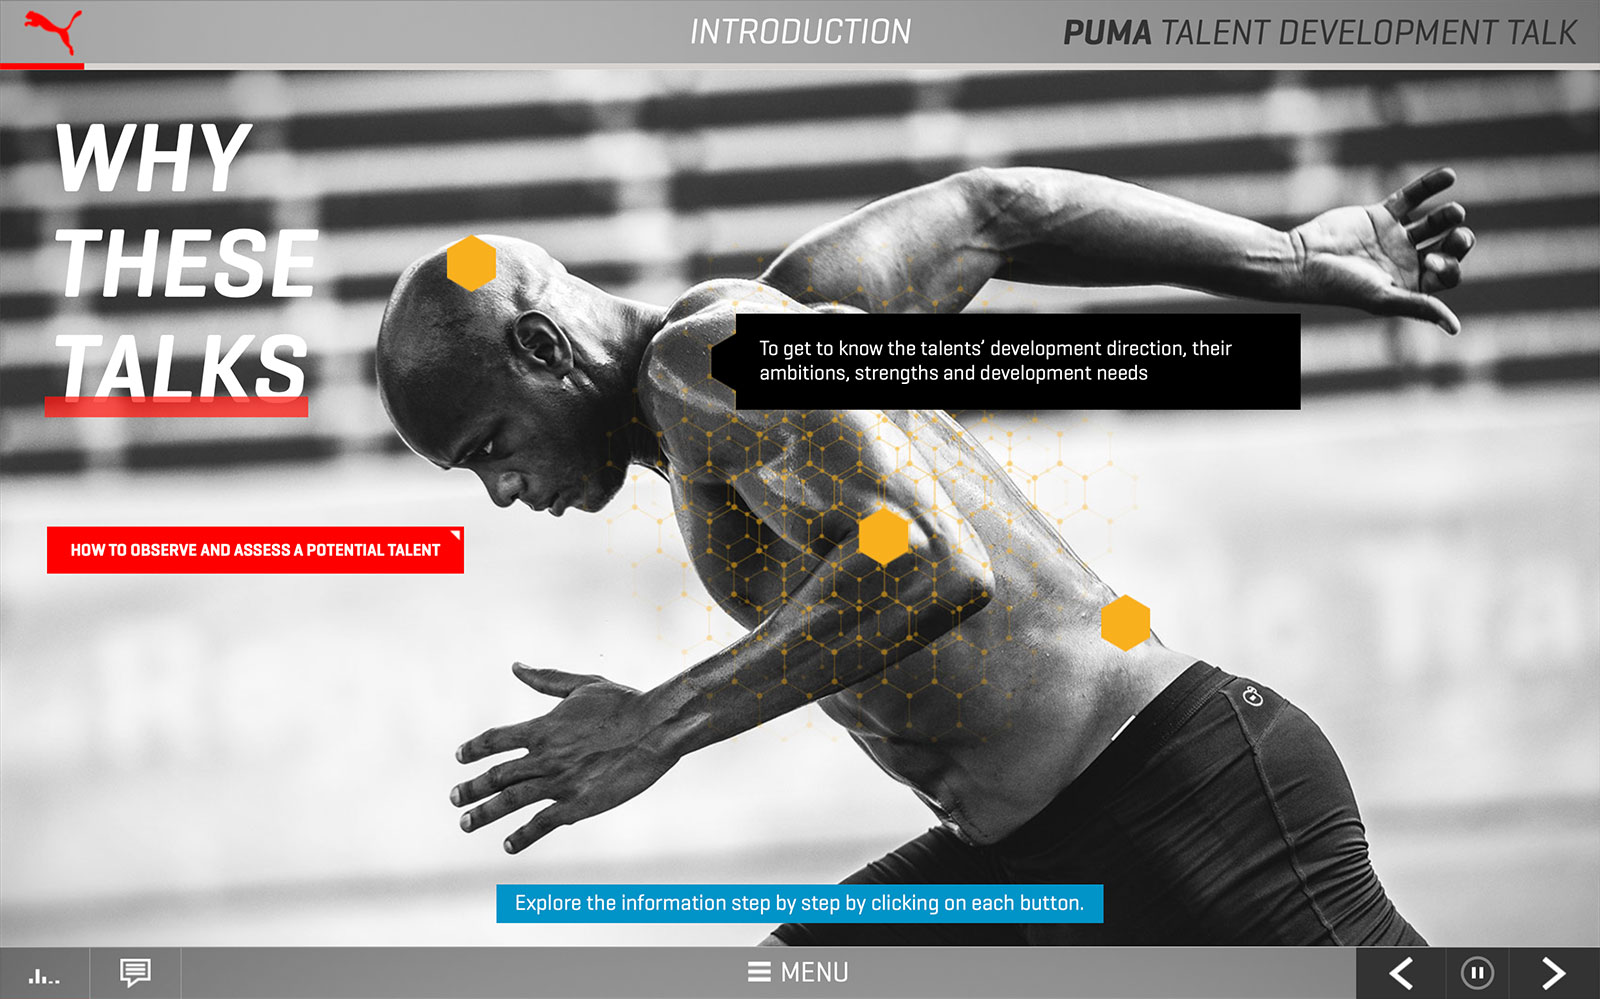 Screenshot PUMA Talent Development Talk 'Why these talks'